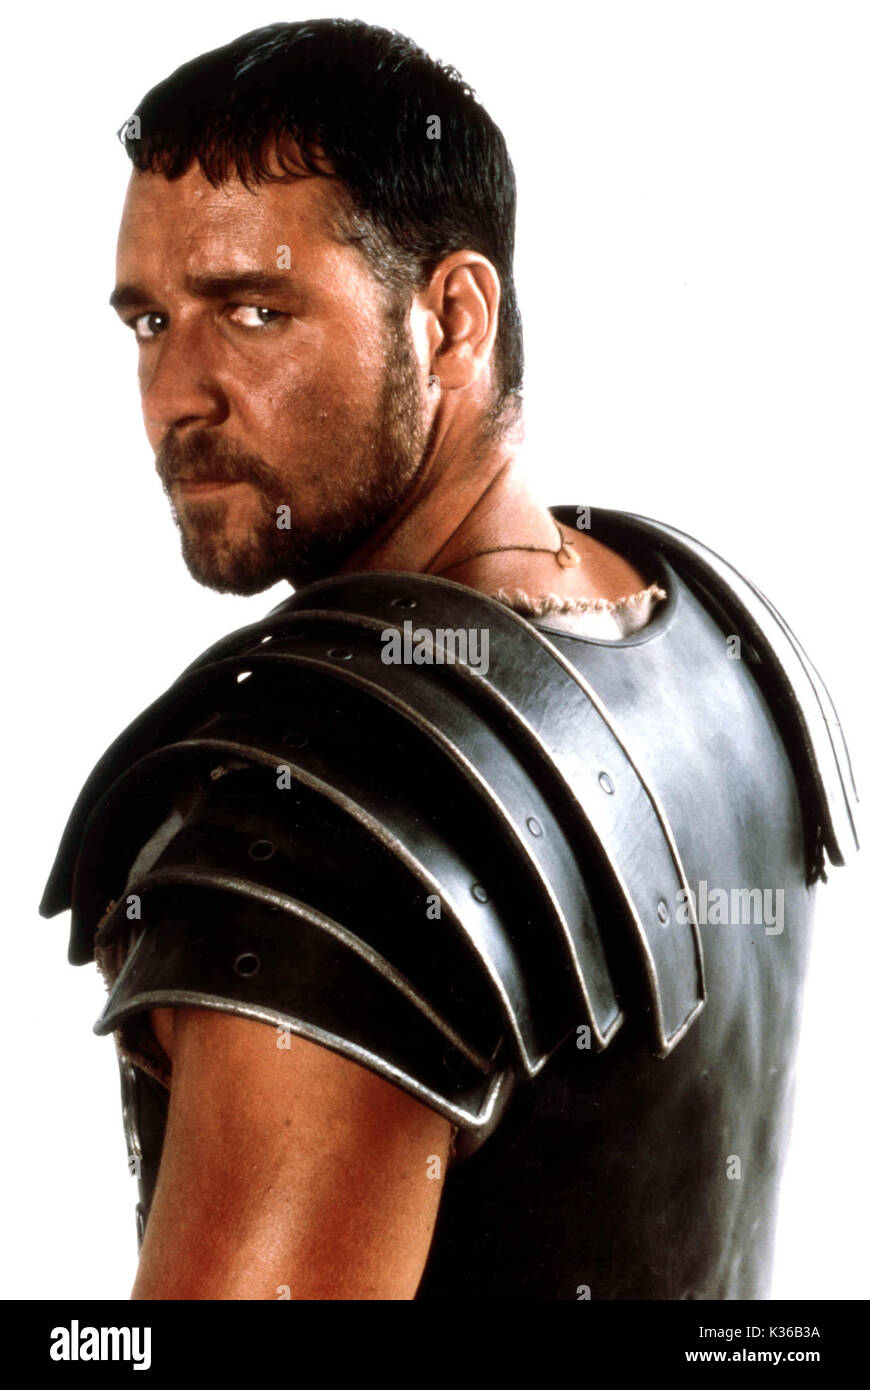 gladiator dating Hearing his then one-year-old daughter calling for him over the cheers of the  studio audience remains his proudest moment on gladiators.